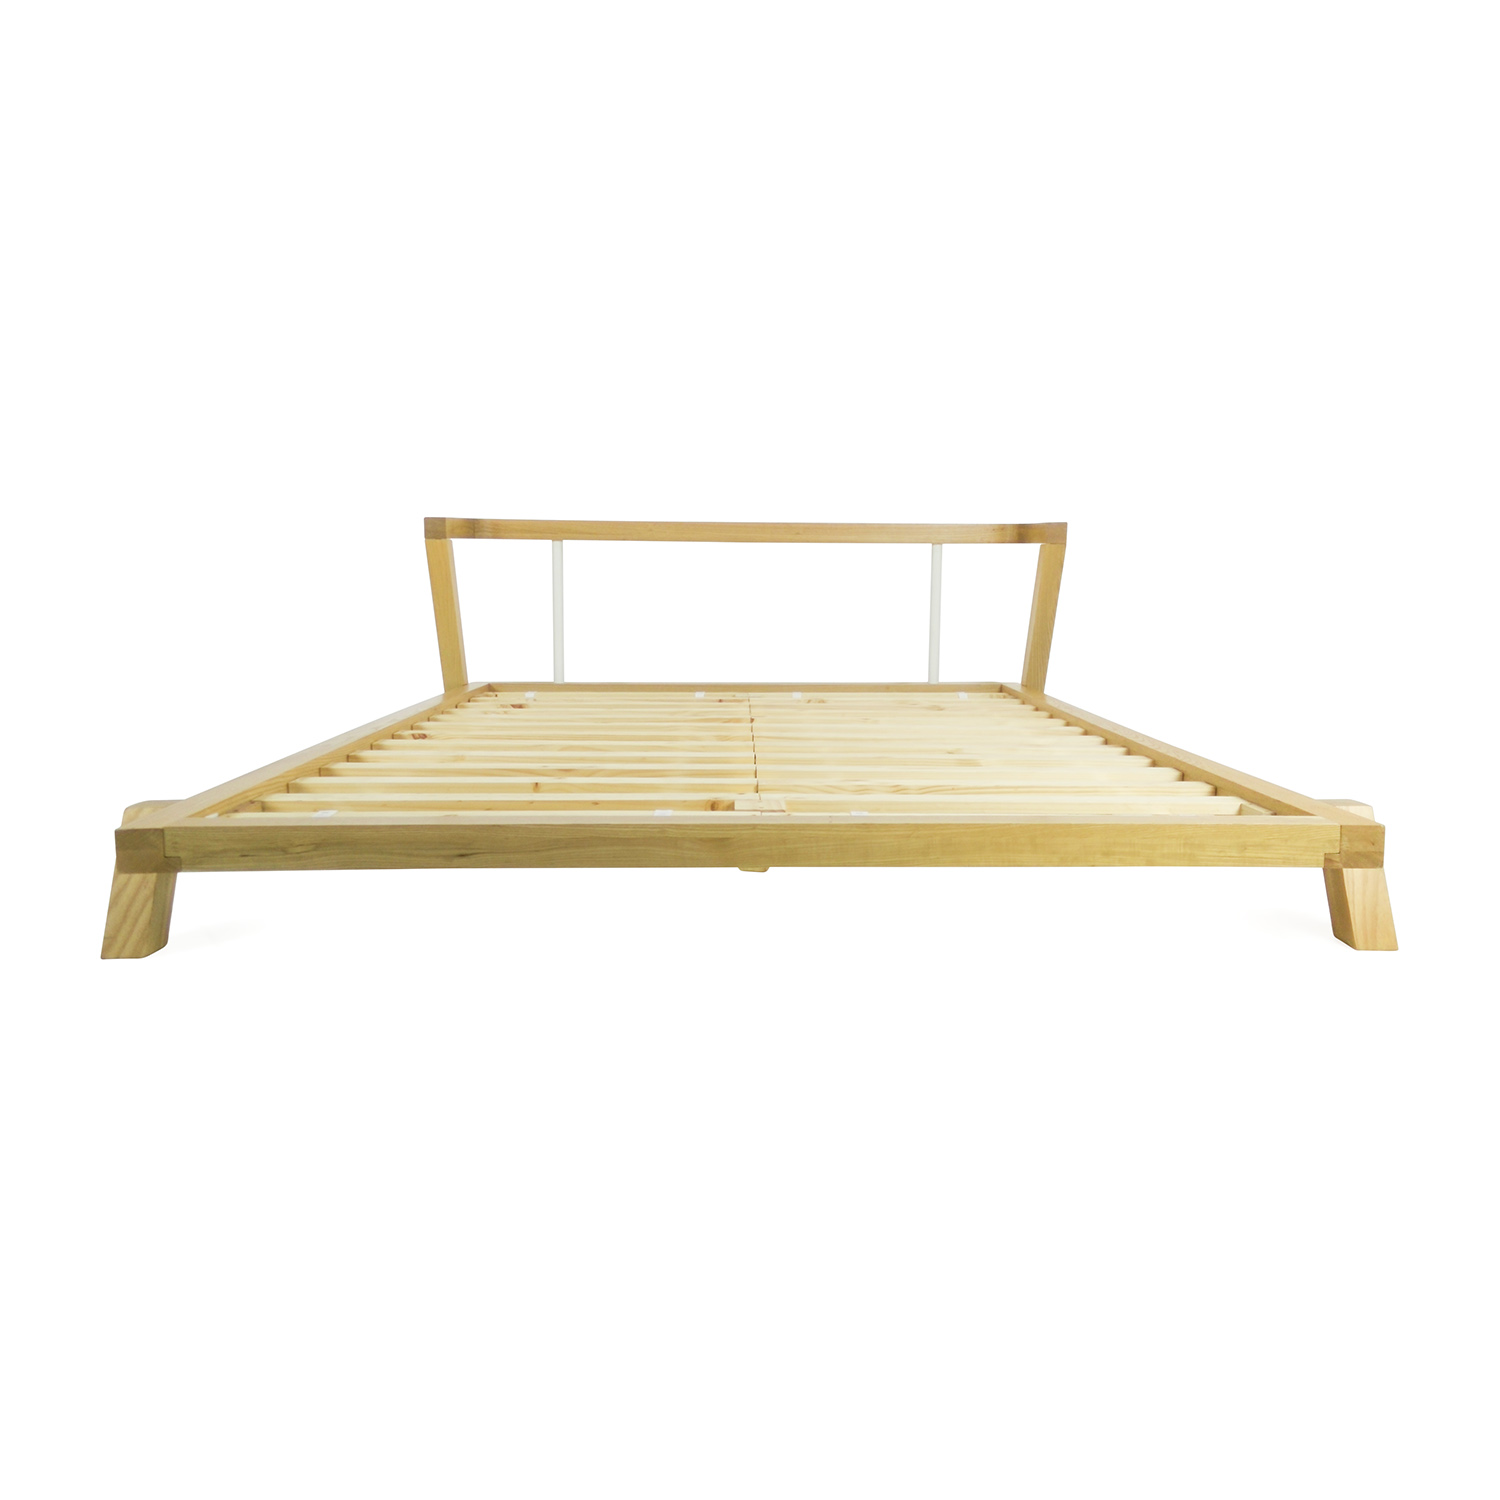 CB2 CB2 Siesta Queen Size Bed